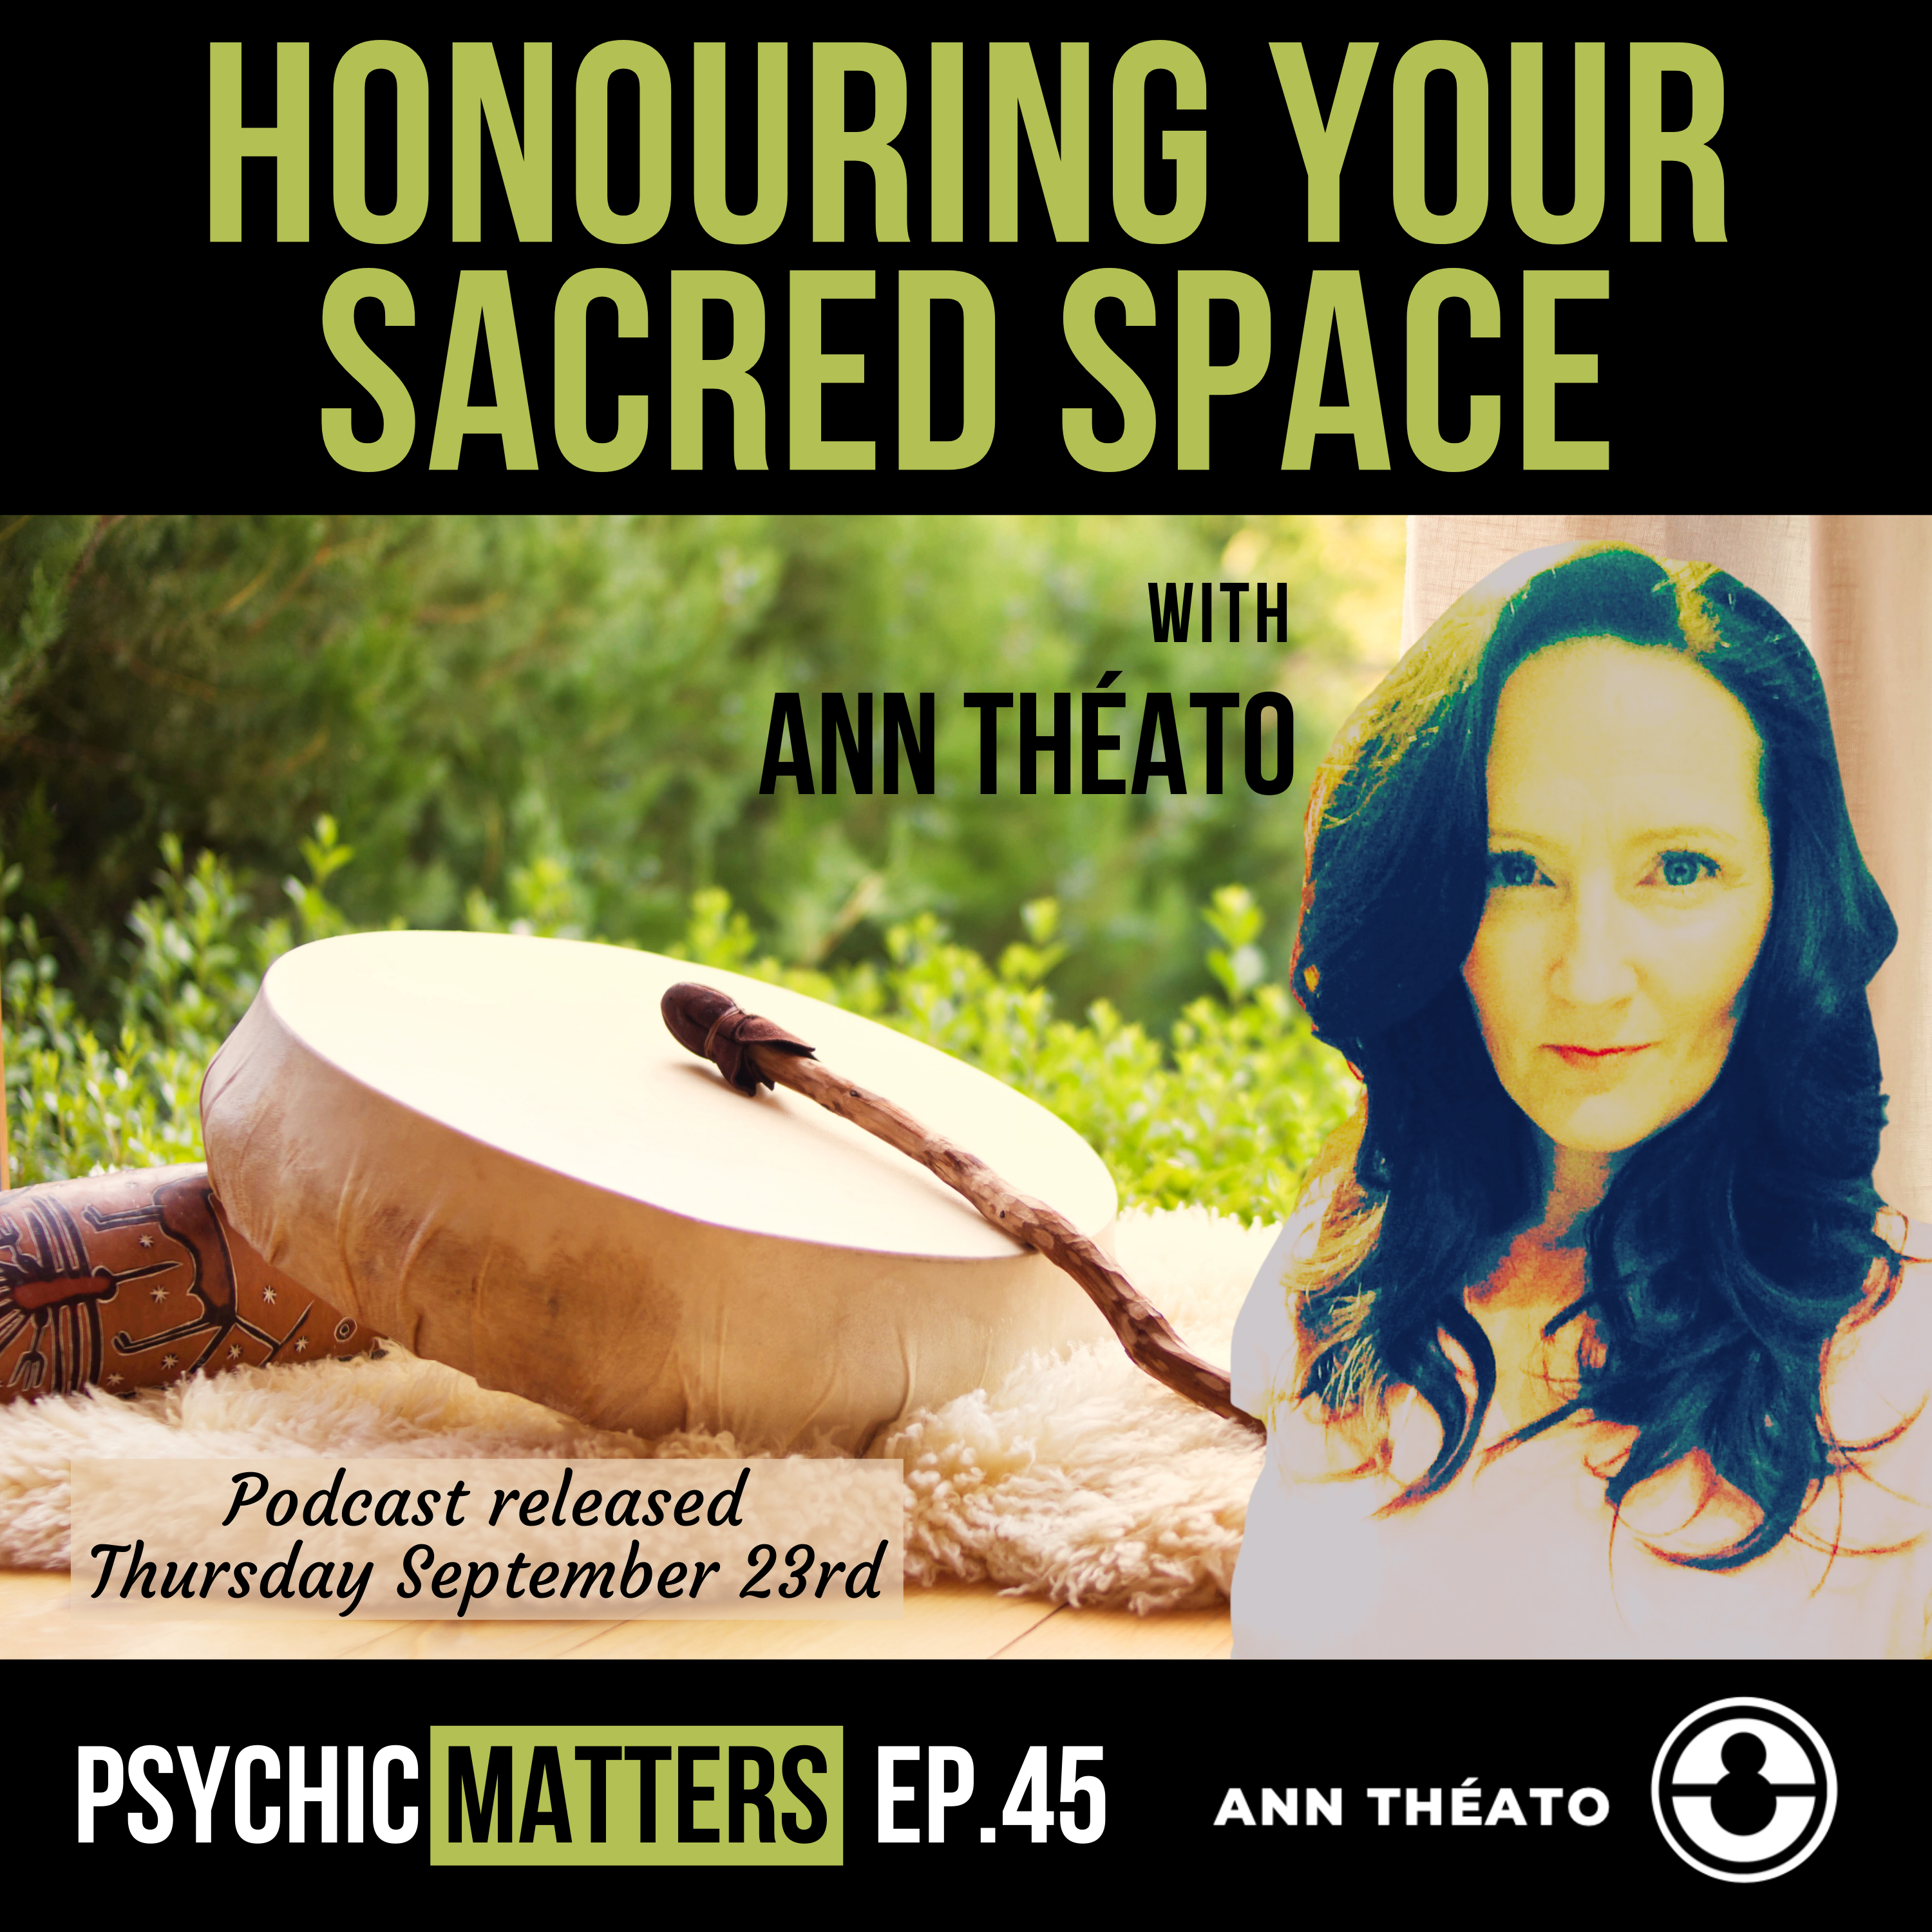 Episode 45 - Honouring Your Sacred Space